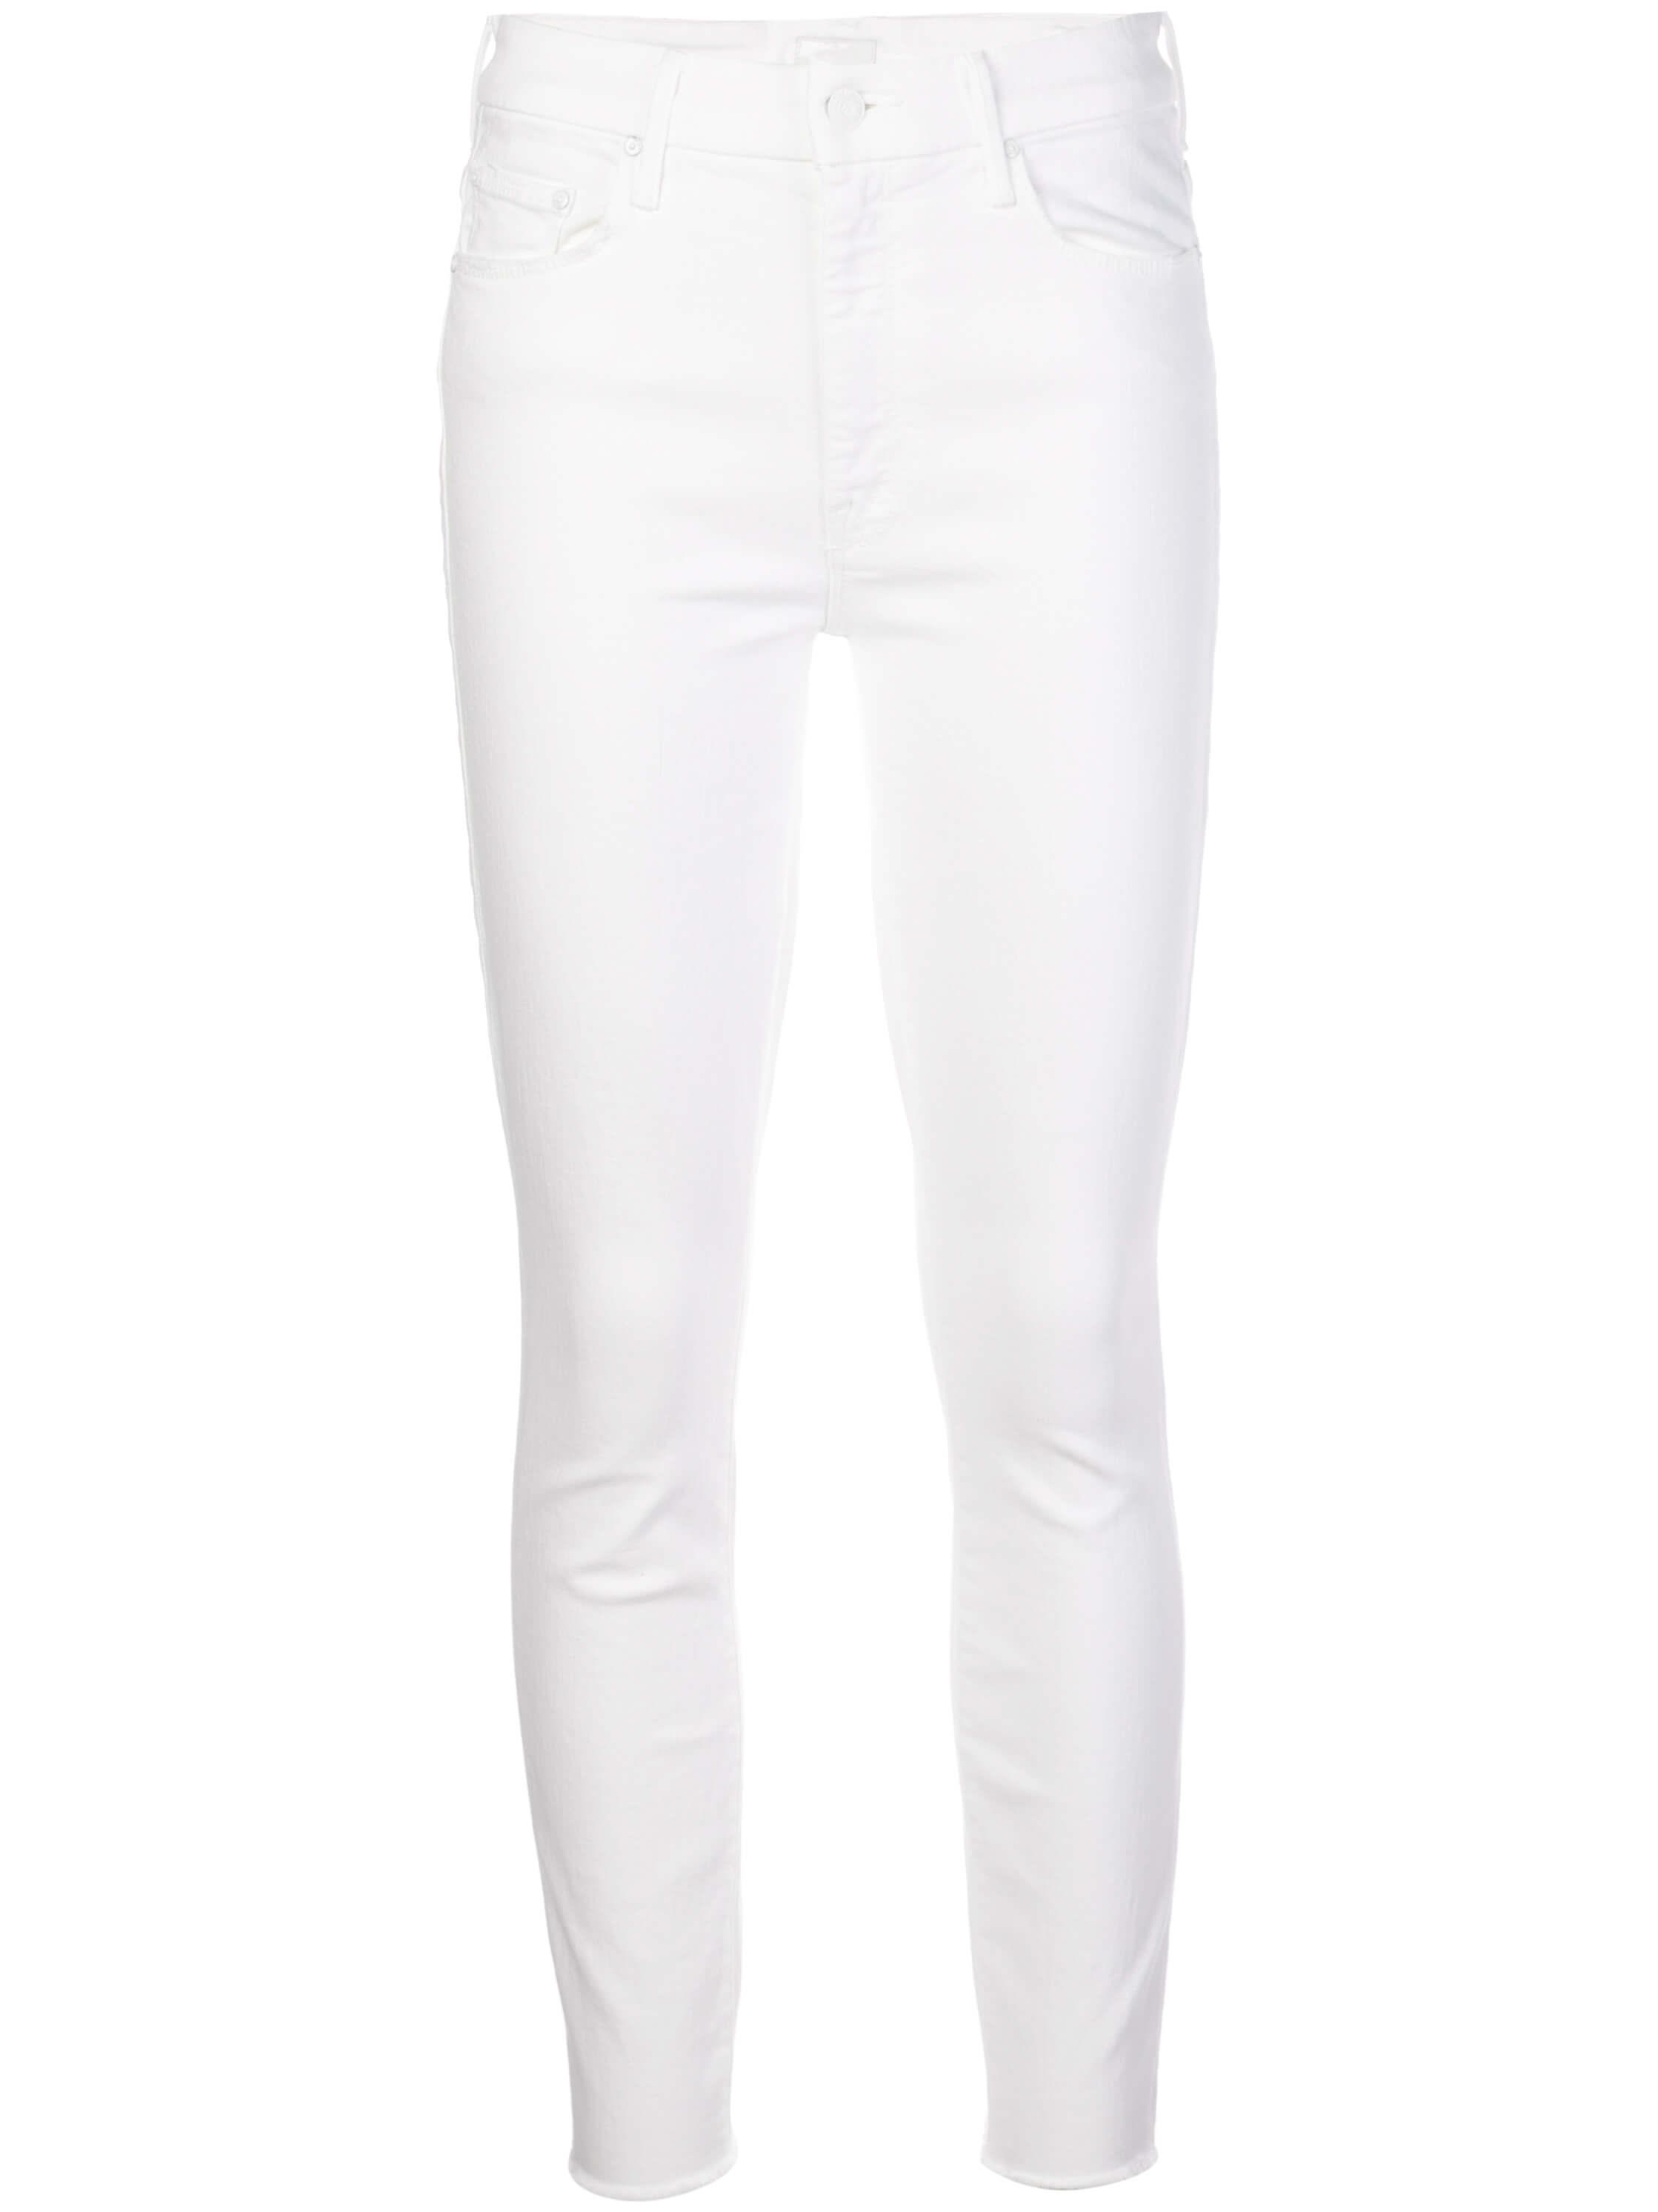 Looker High Waisted Ankle Fray Skinny Item # 1411-753-FOT